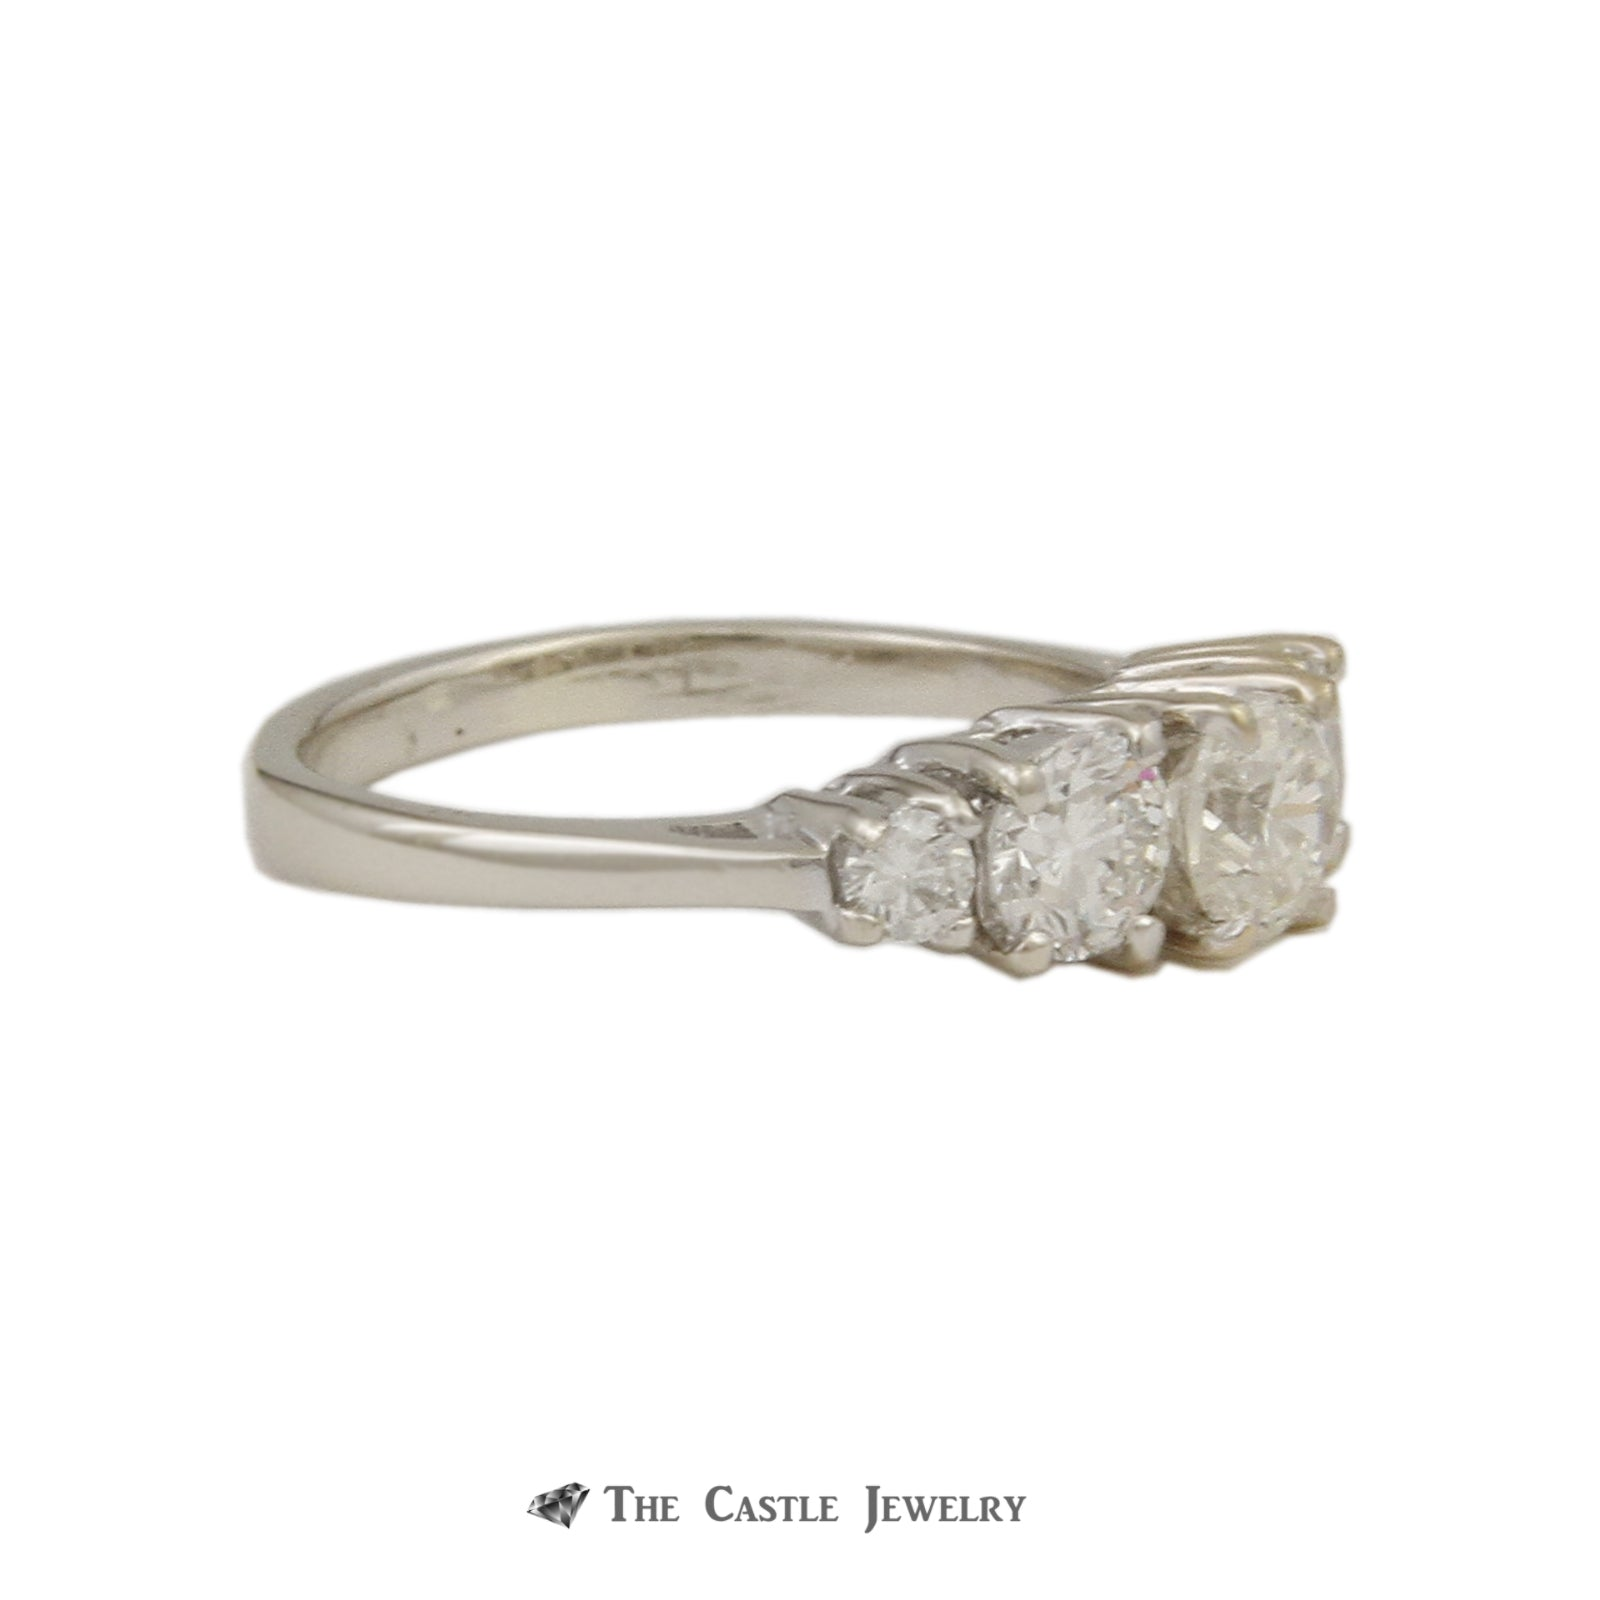 Graduated 1cttw Diamond Band with 5 Round Brilliant Cut Diamonds Crafted in 14K White Gold-2